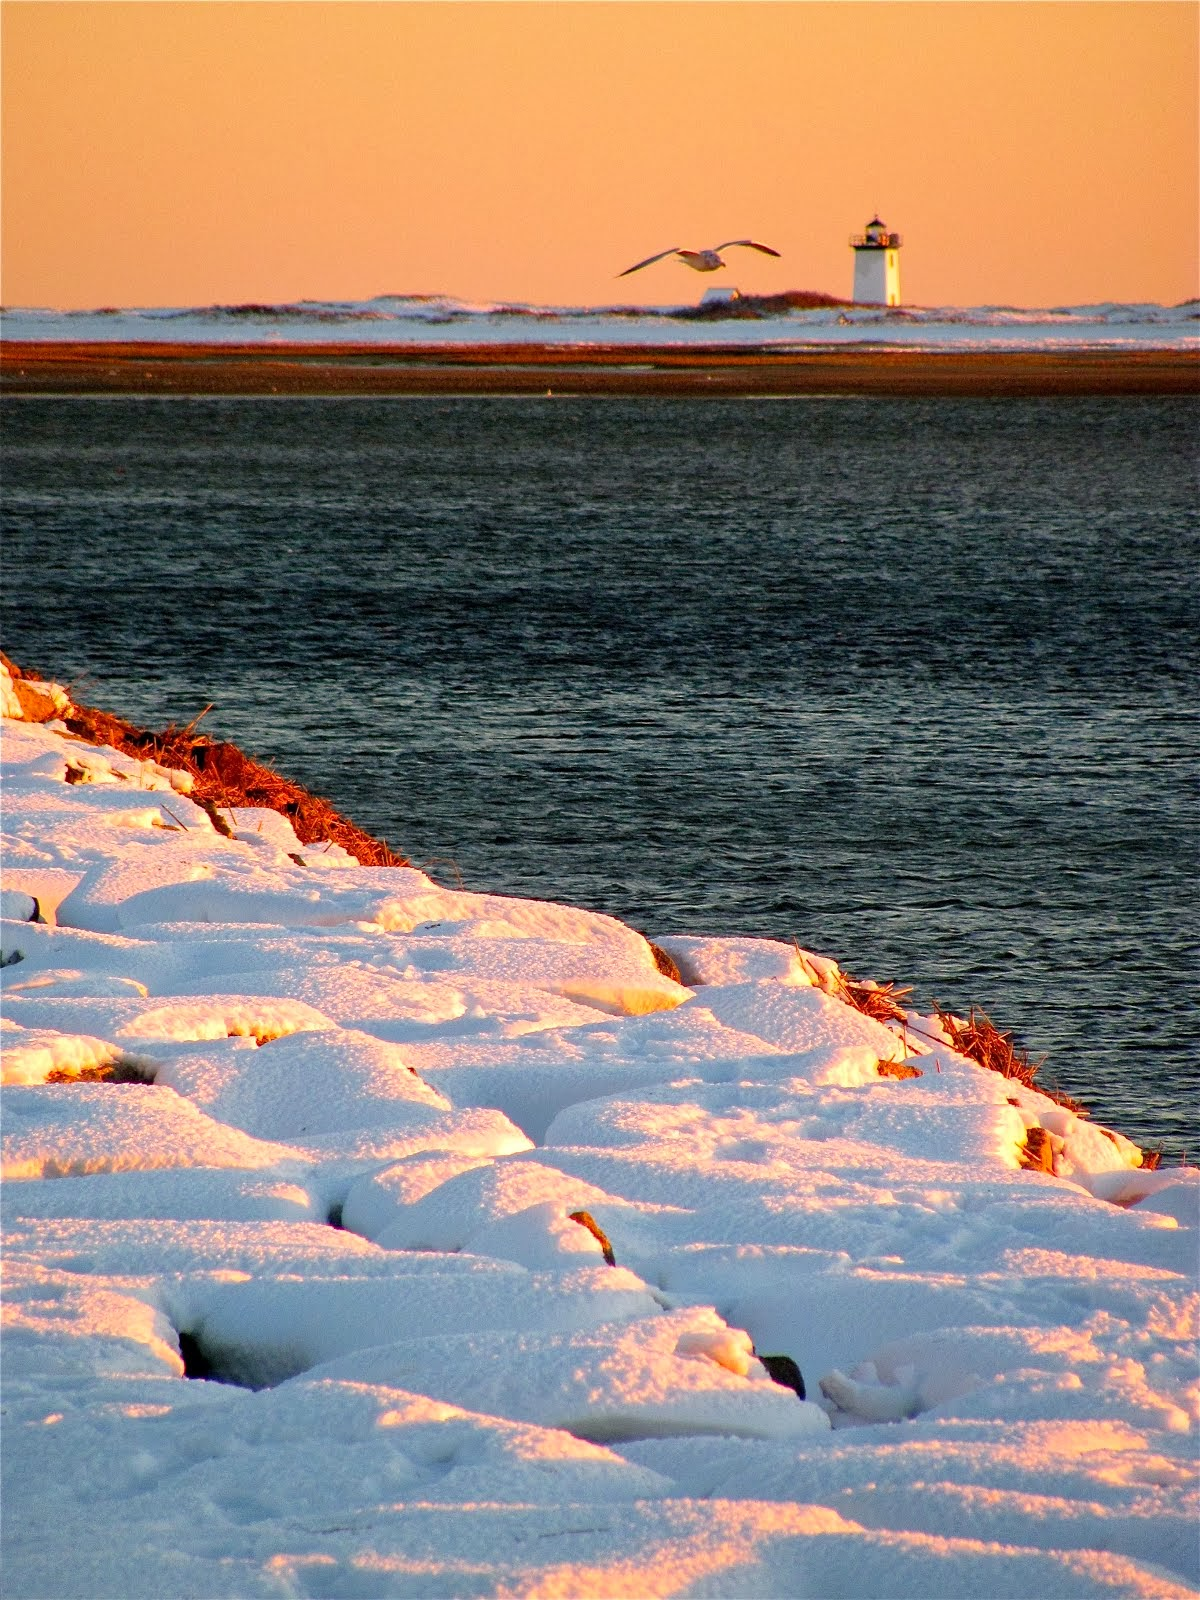 PTown Snow Brought Dramatic Photo Ops.